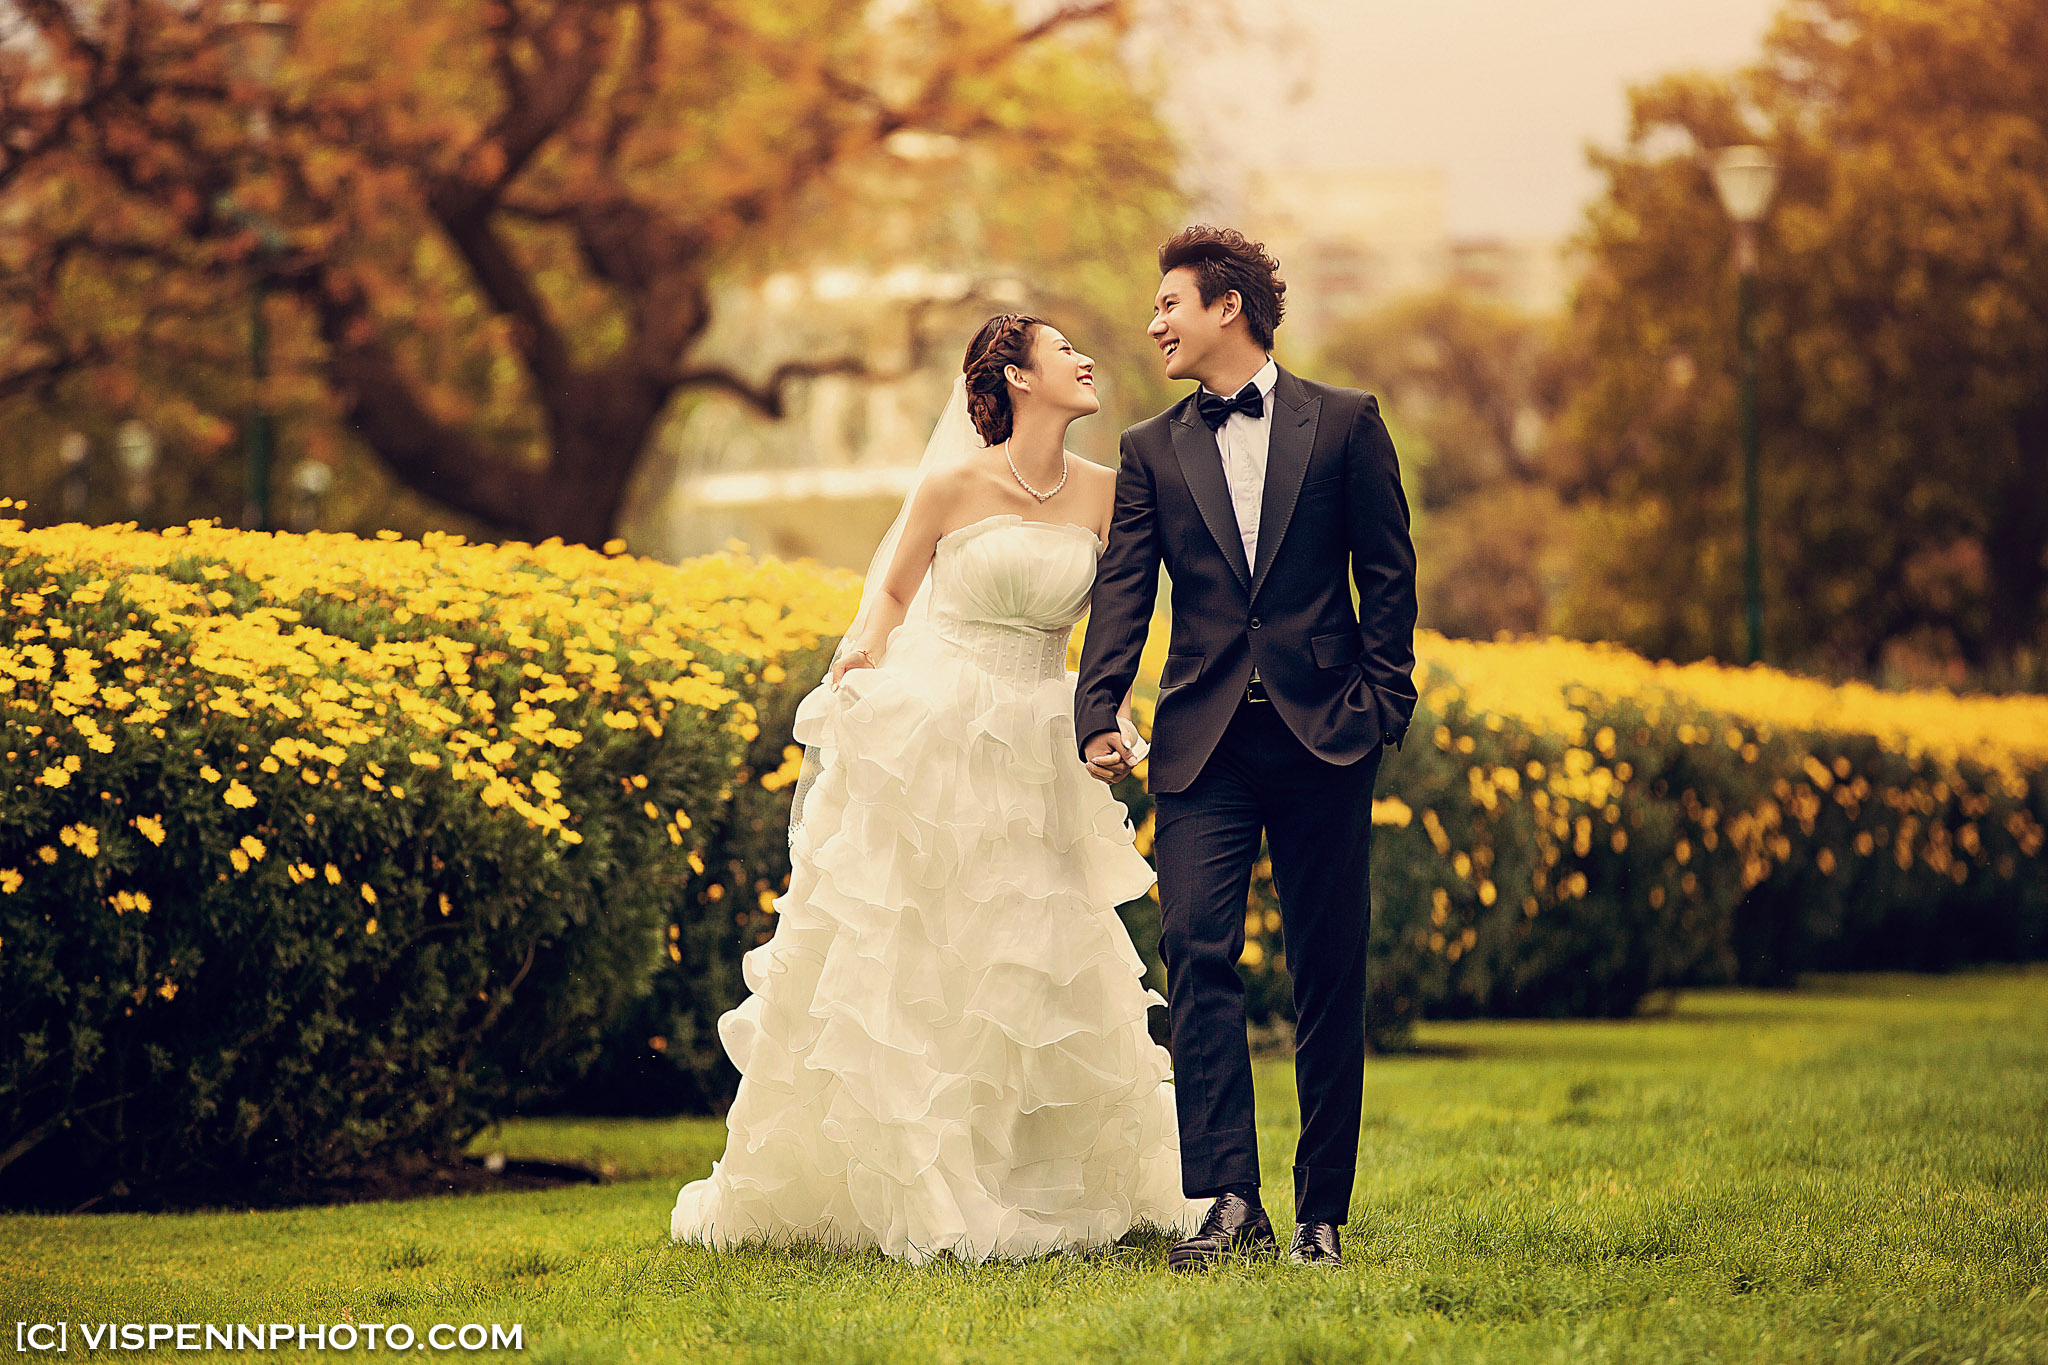 PRE WEDDING Photography Melbourne 5D3 3297